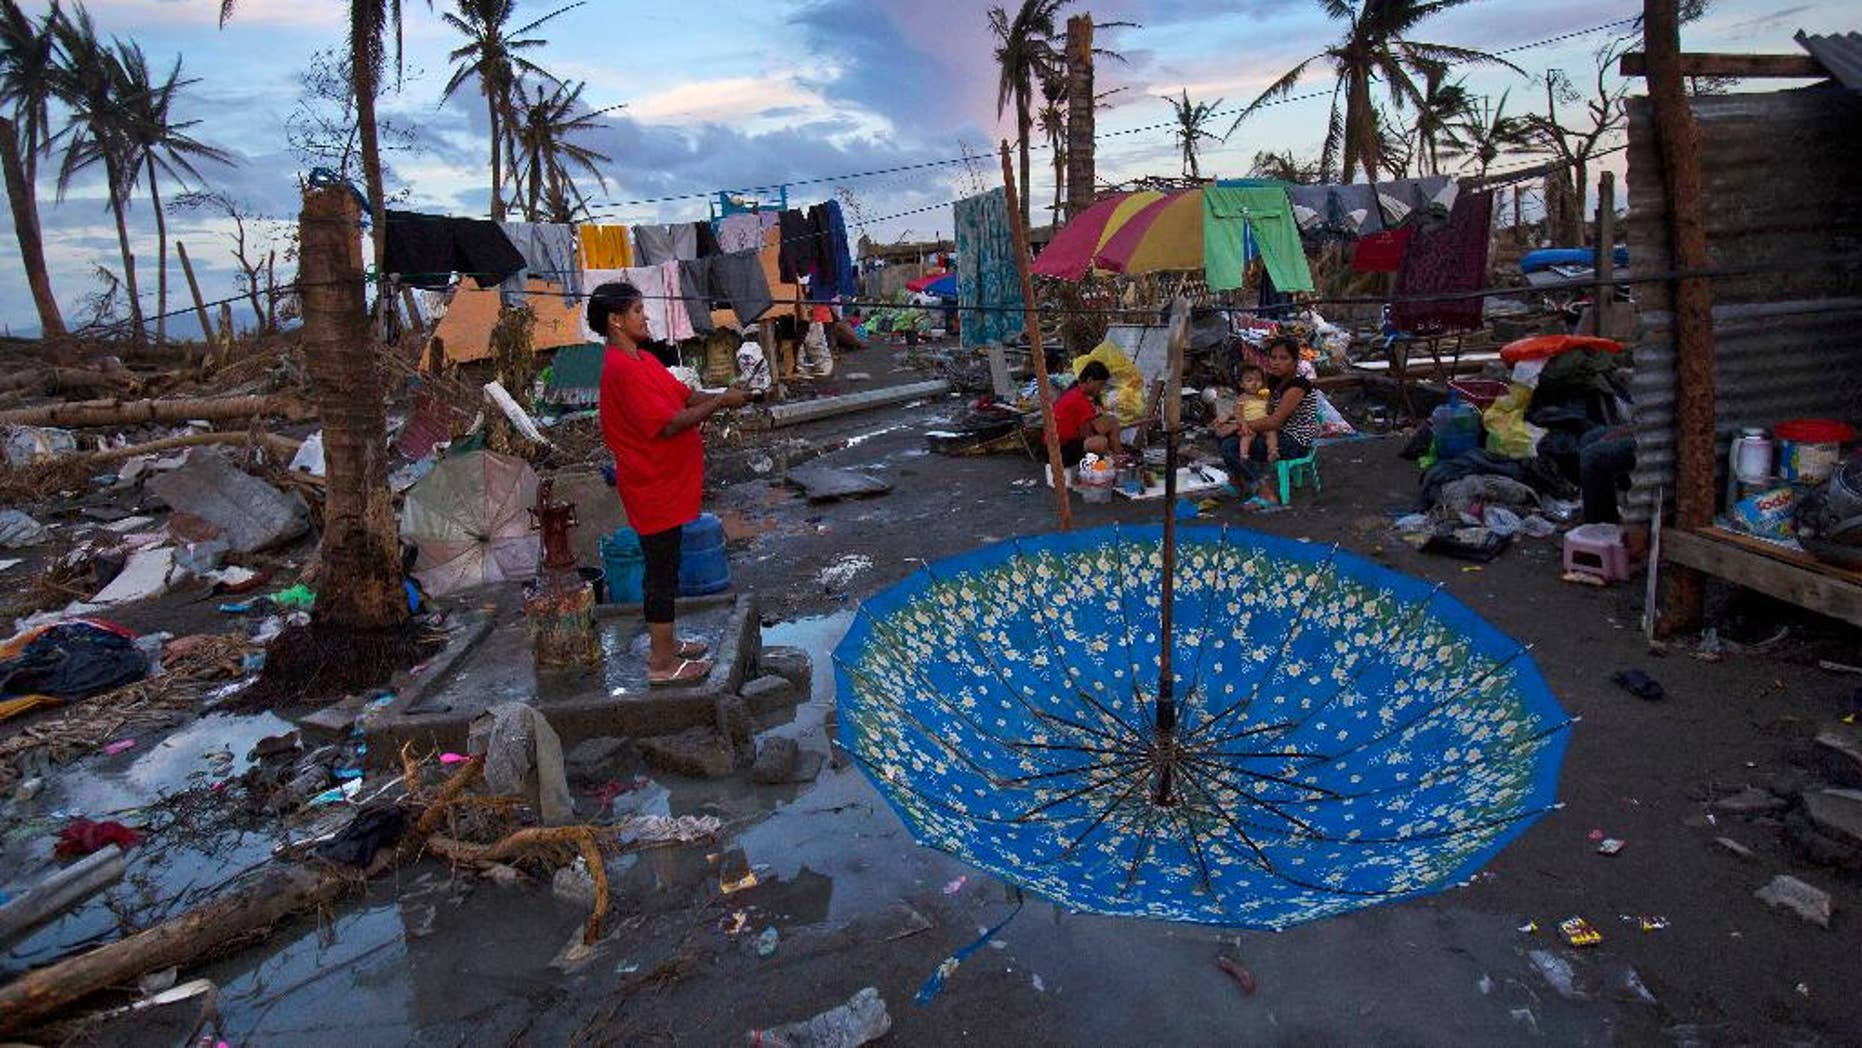 FILE - In this Nov. 13, 2013 file photo, Typhoon Haiyan survivors make camp in the ruins of their neighborhood on the outskirts of Tacloban, central Philippines. The Asian Development Bank says climate change has been making the poor in the Asia-Pacific region even poorer and is also setting back efforts to haul them out of poverty. According to the Manila-based lender, 1.5 million Filipinos have been pushed deeper into poverty and about 6 million lost their jobs in 2013 as a result of Typhoon Haiyan, one of the world's most powerful storms. (AP Photo/David Guttenfelder, File)